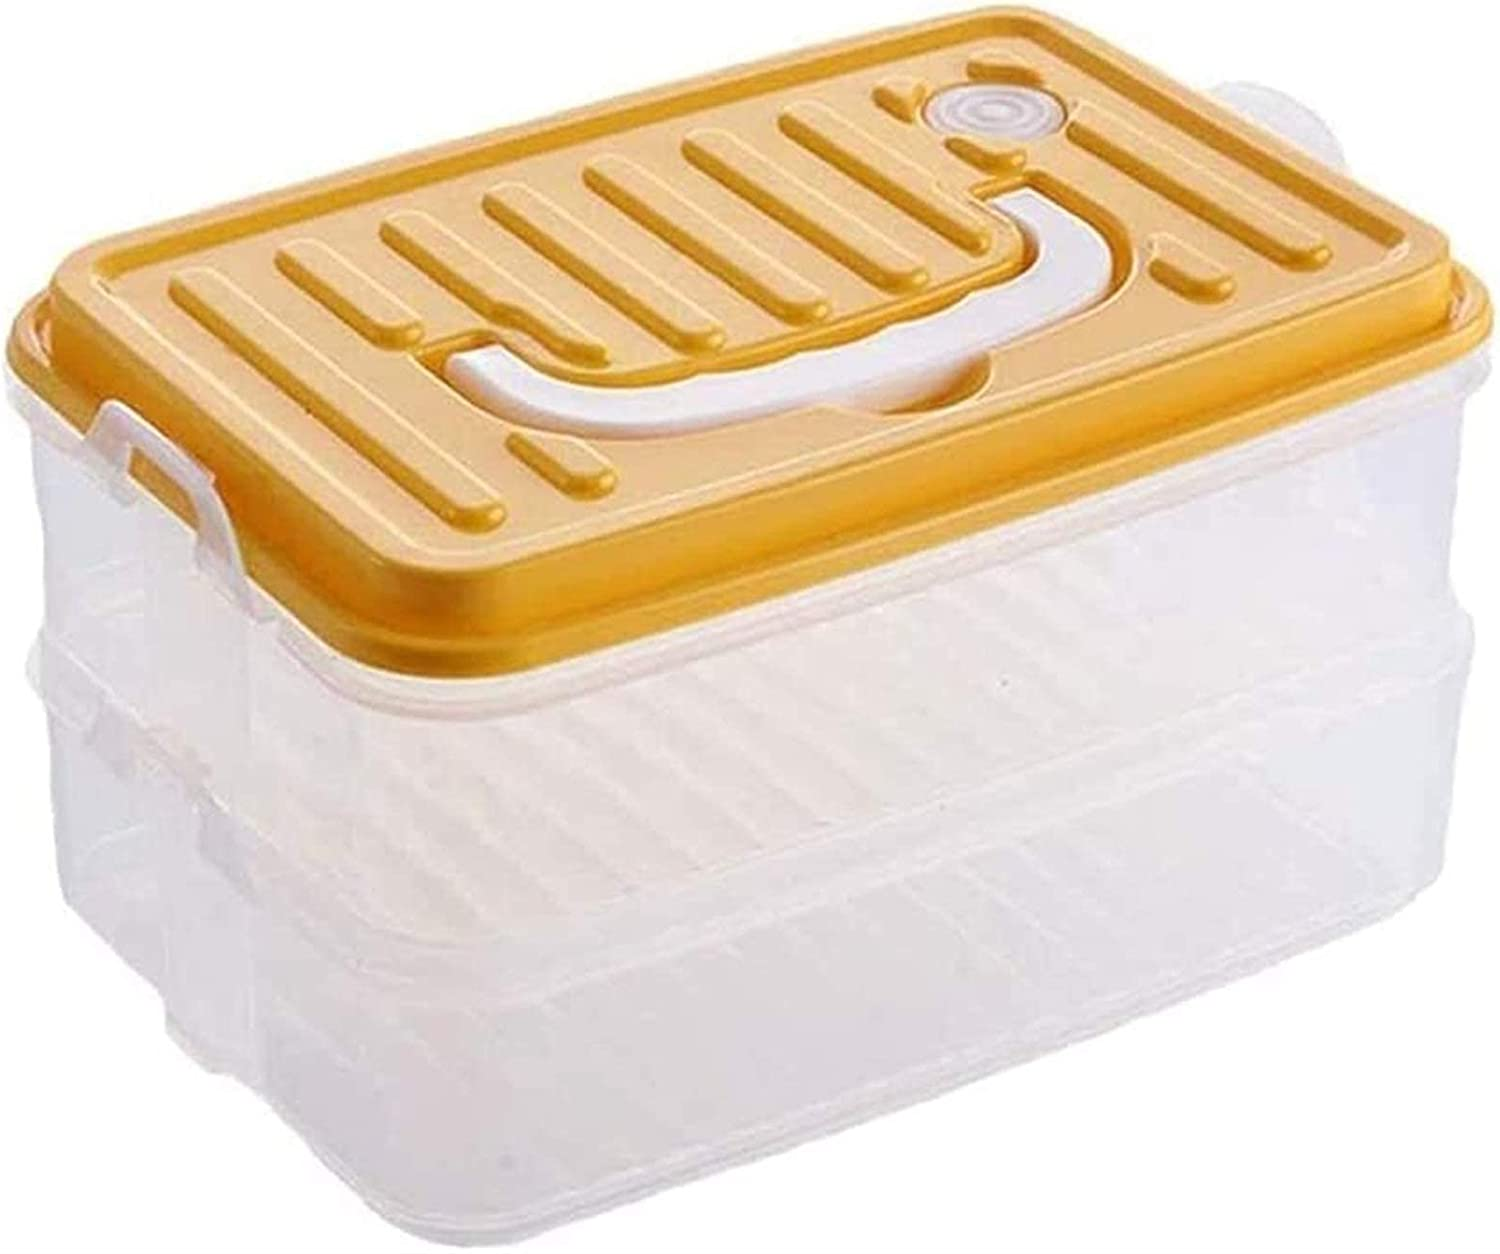 Grain Free shipping on posting reviews container Stack Carry Finally popular brand 2 Layer Box Base with Clear Handle